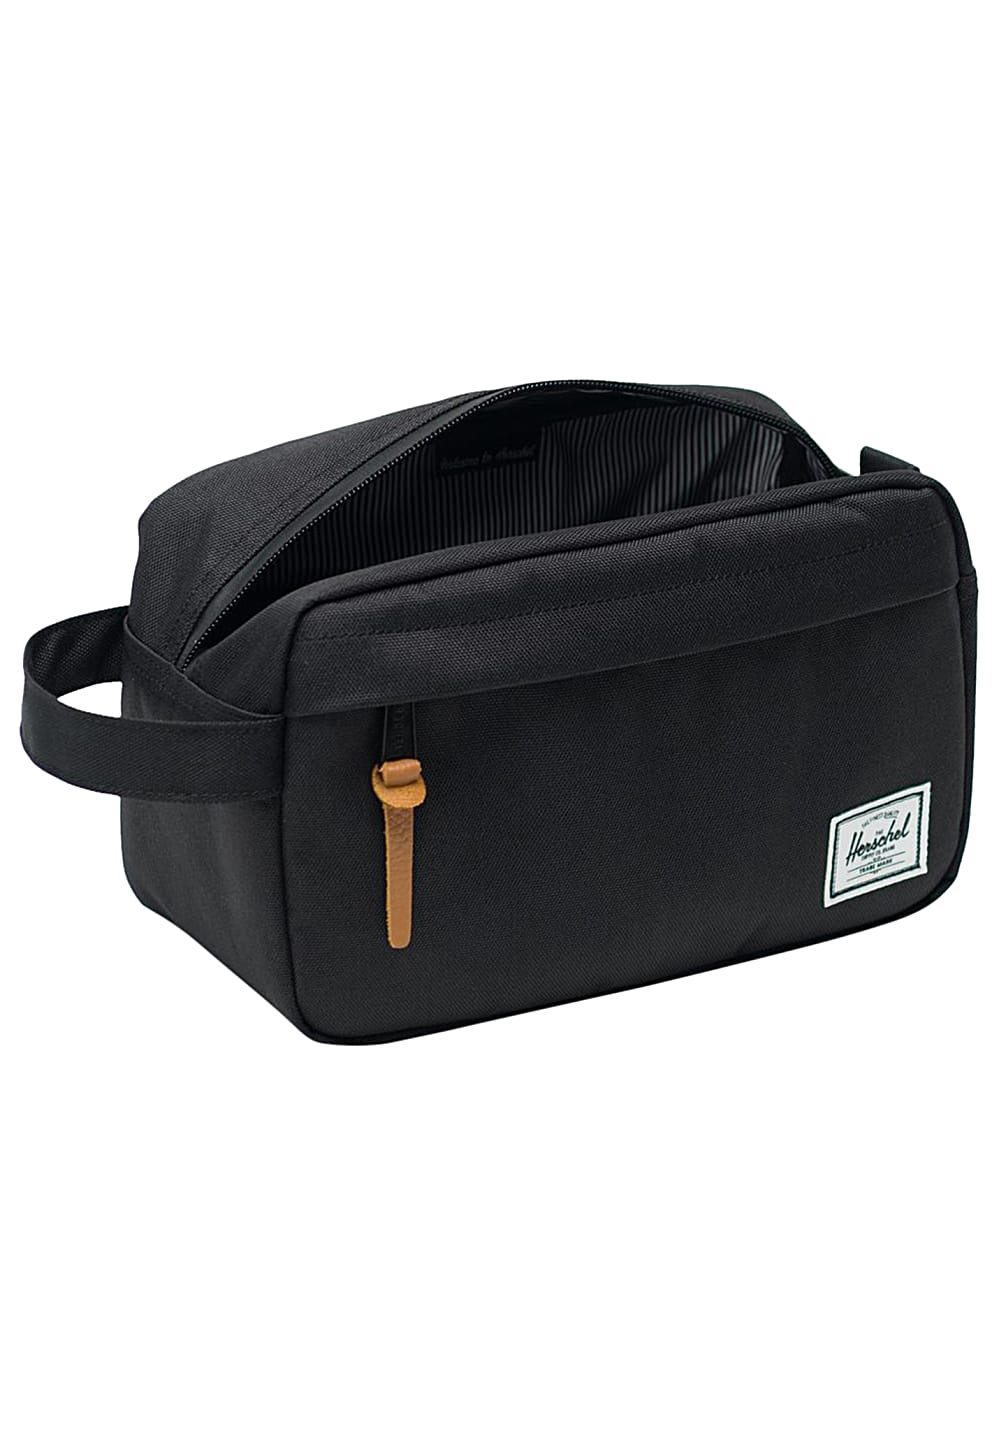 551e594e02 ... Herschel SUPPLY CO Chapter Travel - Sponge bag - Black. Back to  Overview. 1; 2; 3. Previous. Next